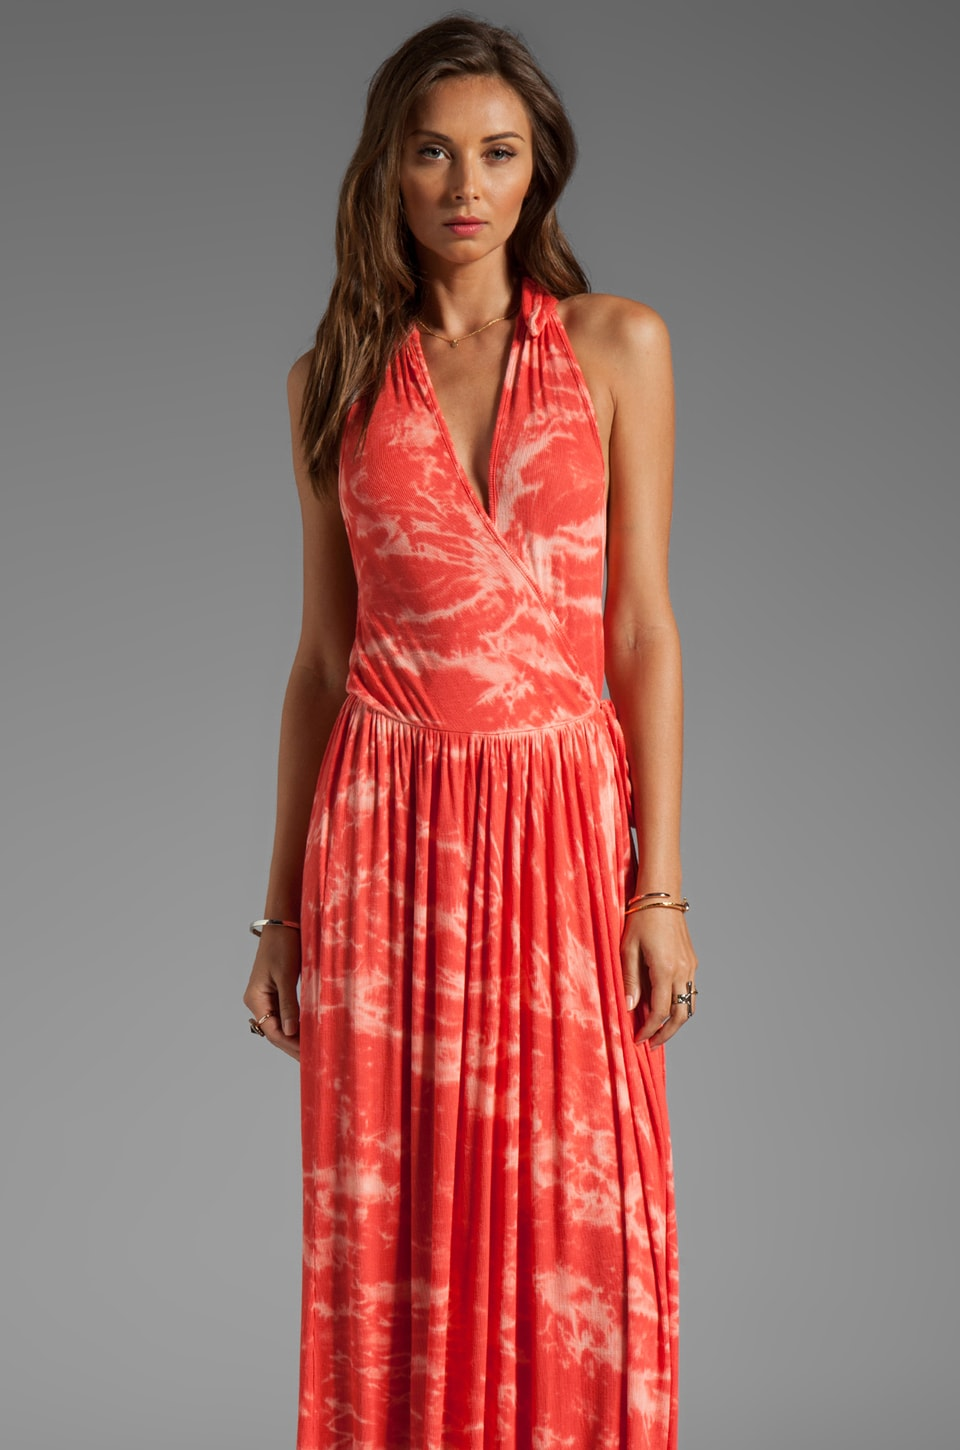 Rachel Pally Rib Stanley Maxi Dress in Apricot Tie Dye